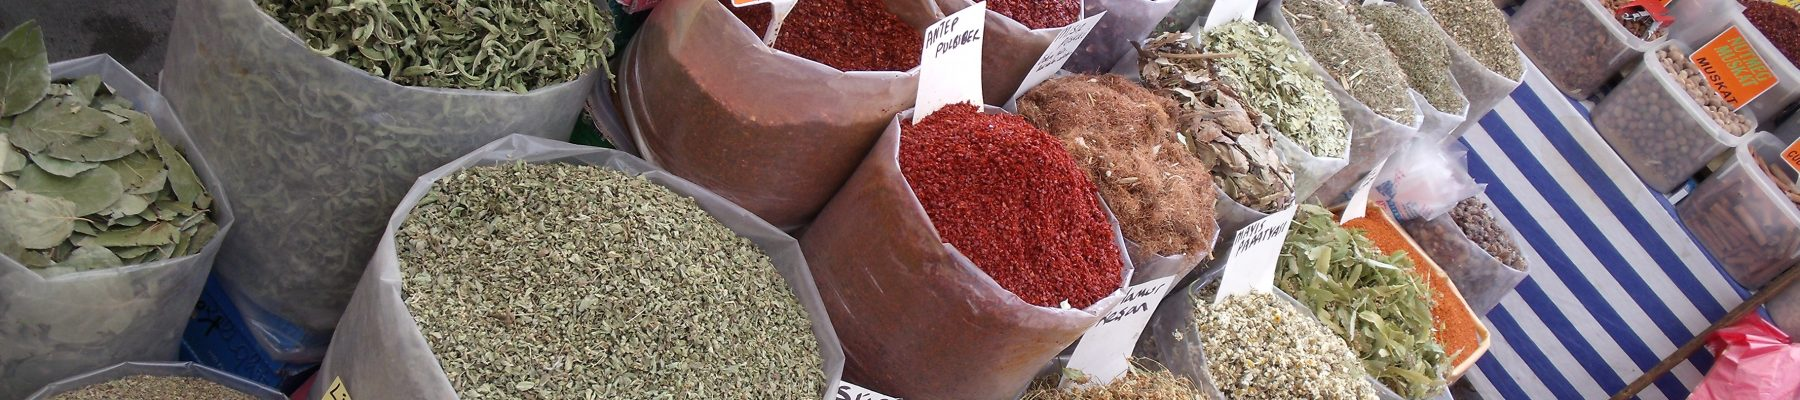 Milas Farmers Market spices